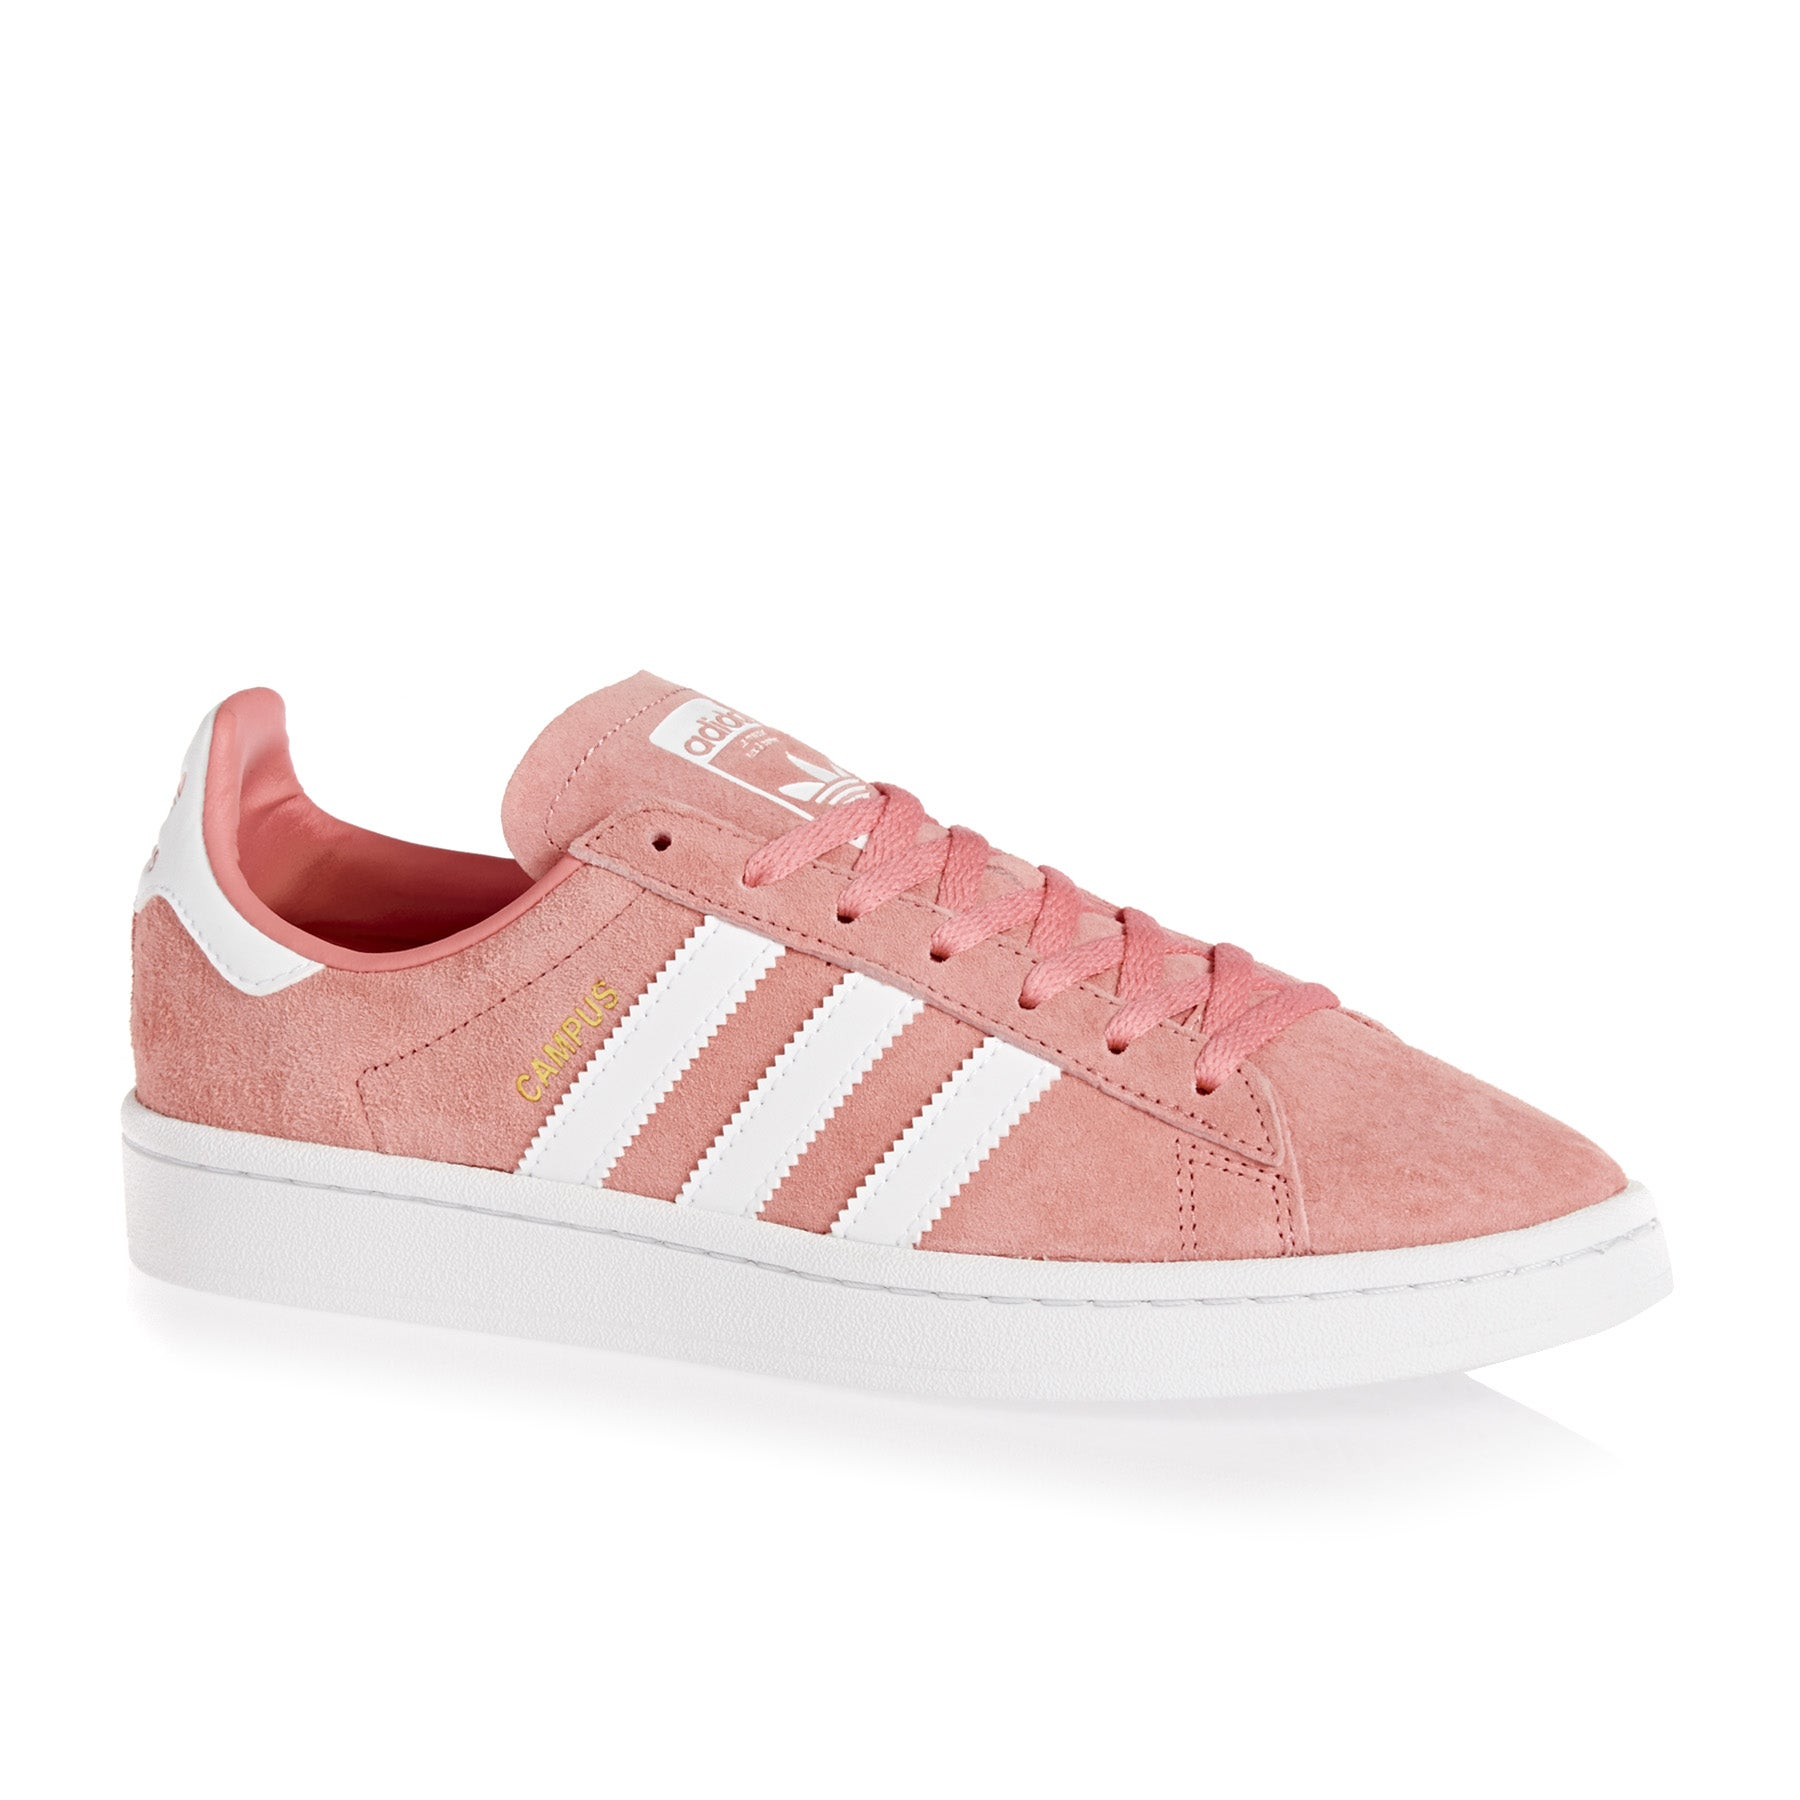 info for 7dde6 ff27c Chaussures Femme Adidas Originals Campus